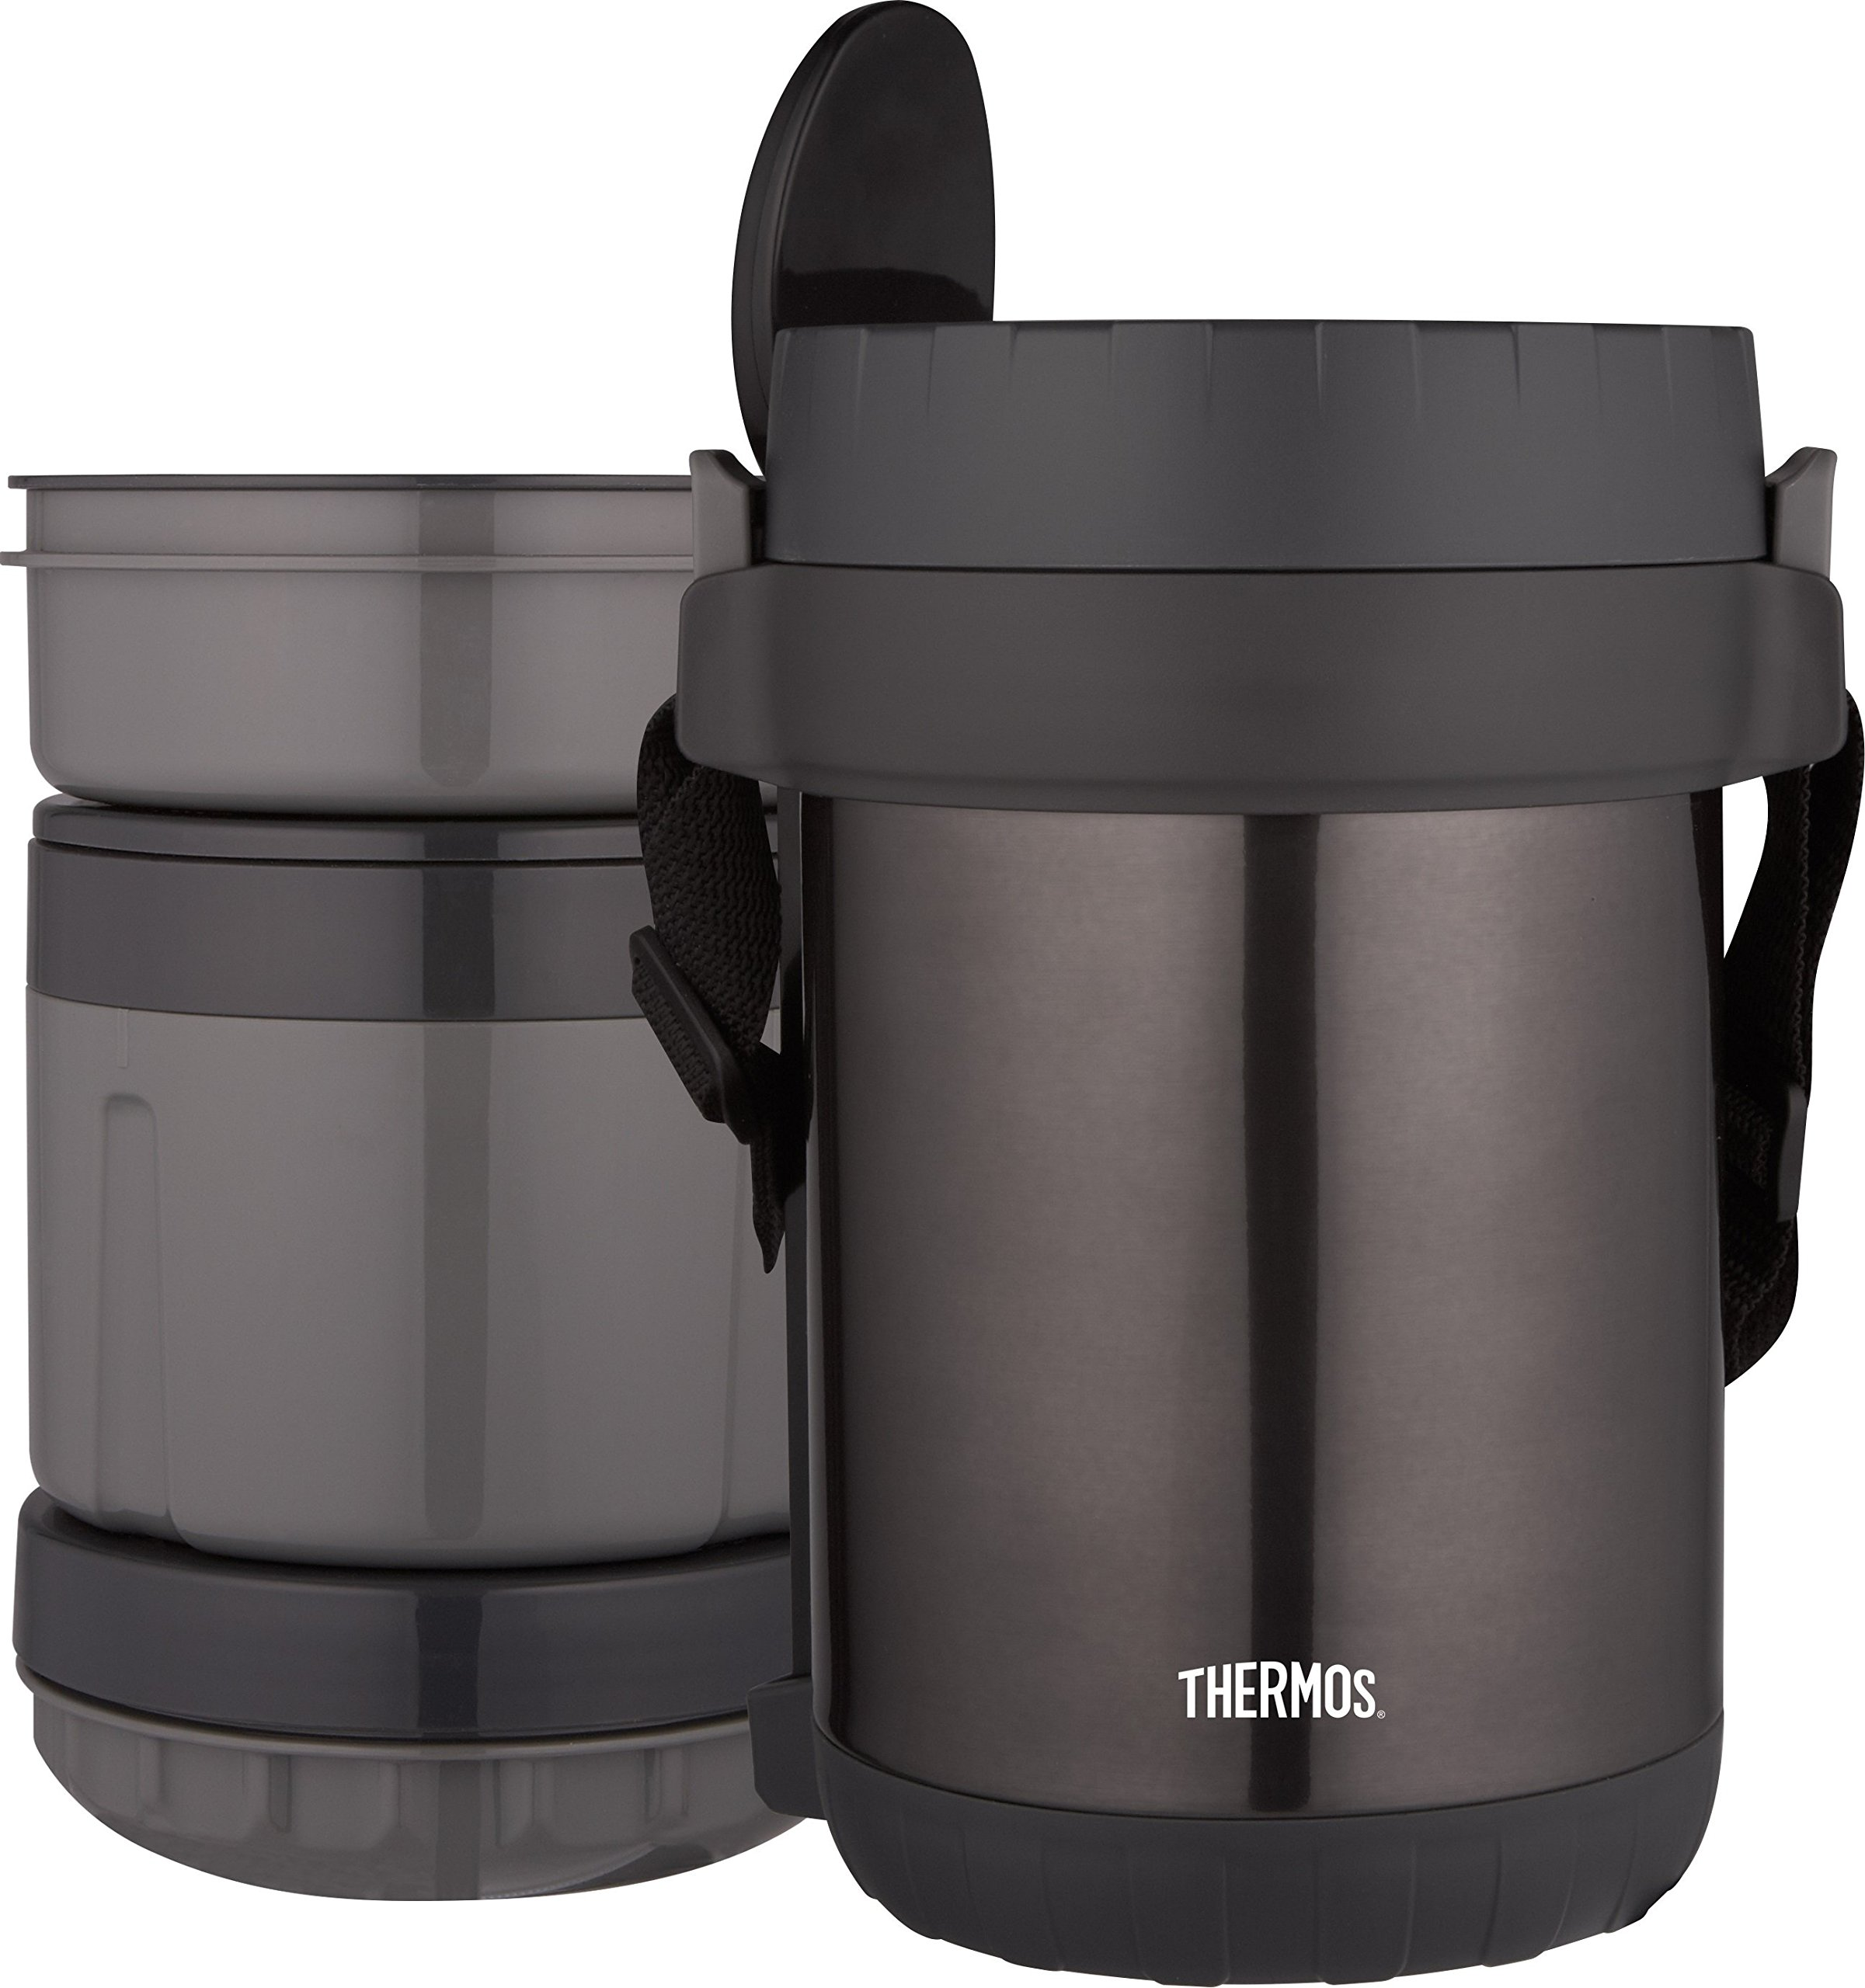 THERMOS All-In-One Vacuum Insulated Stainless Steel Meal Carrier with Spoon, Smoke by Thermos